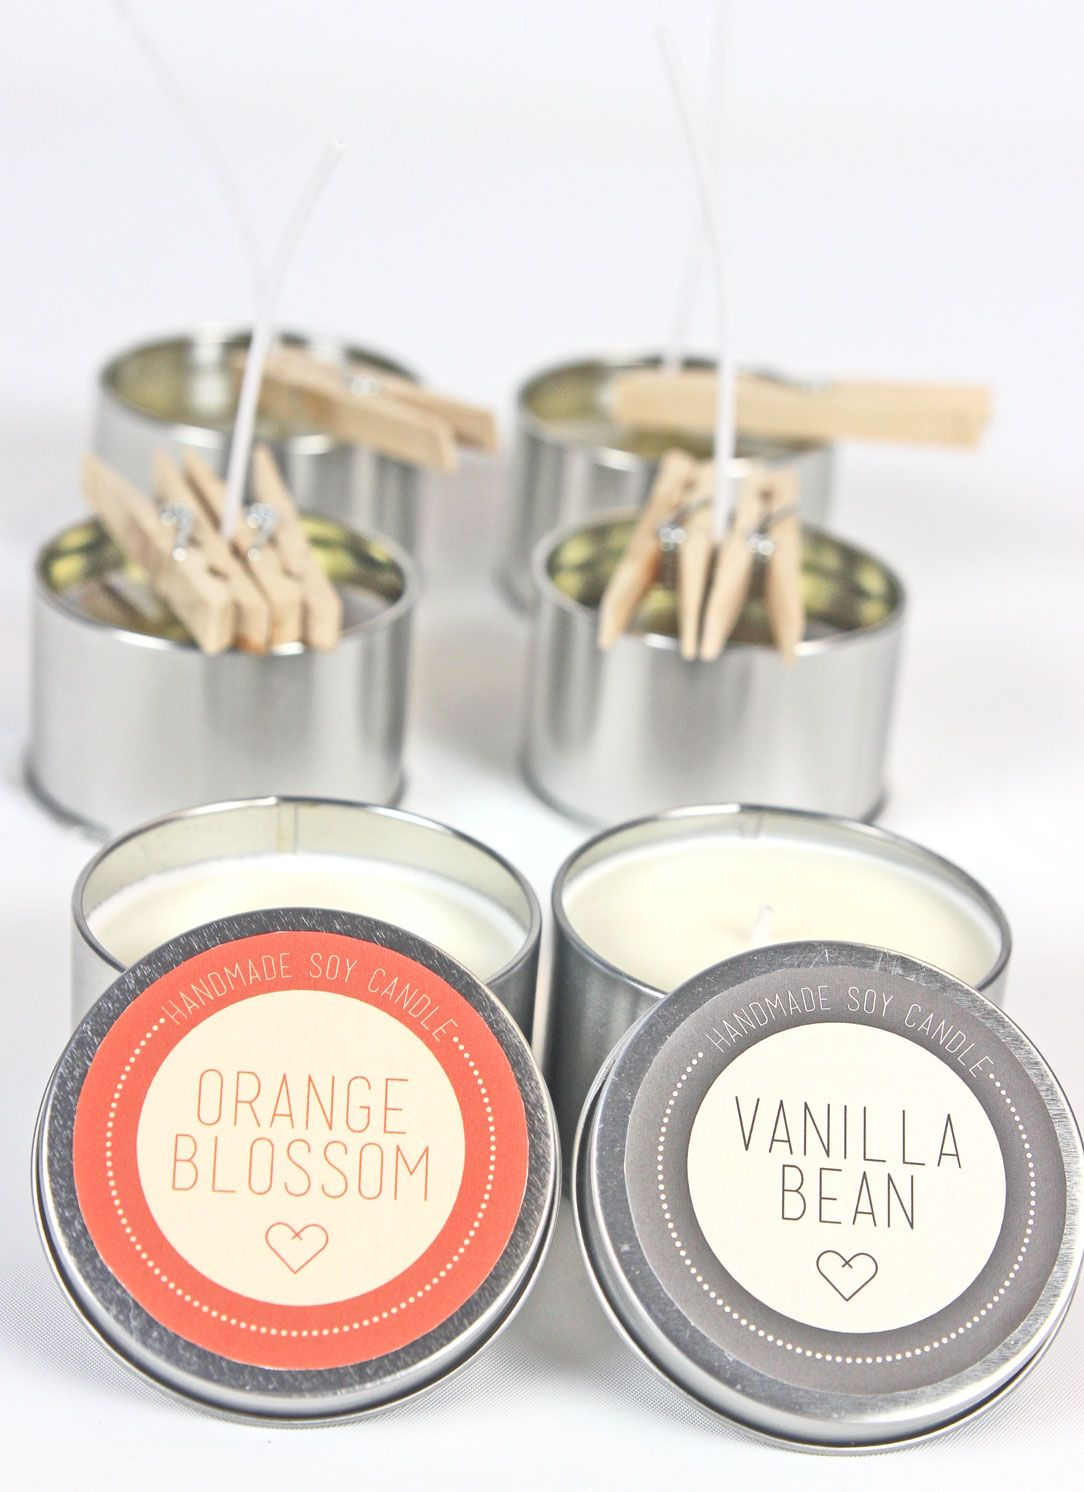 Diy Soy Candles With Orange Blossom And Vanilla Bean With